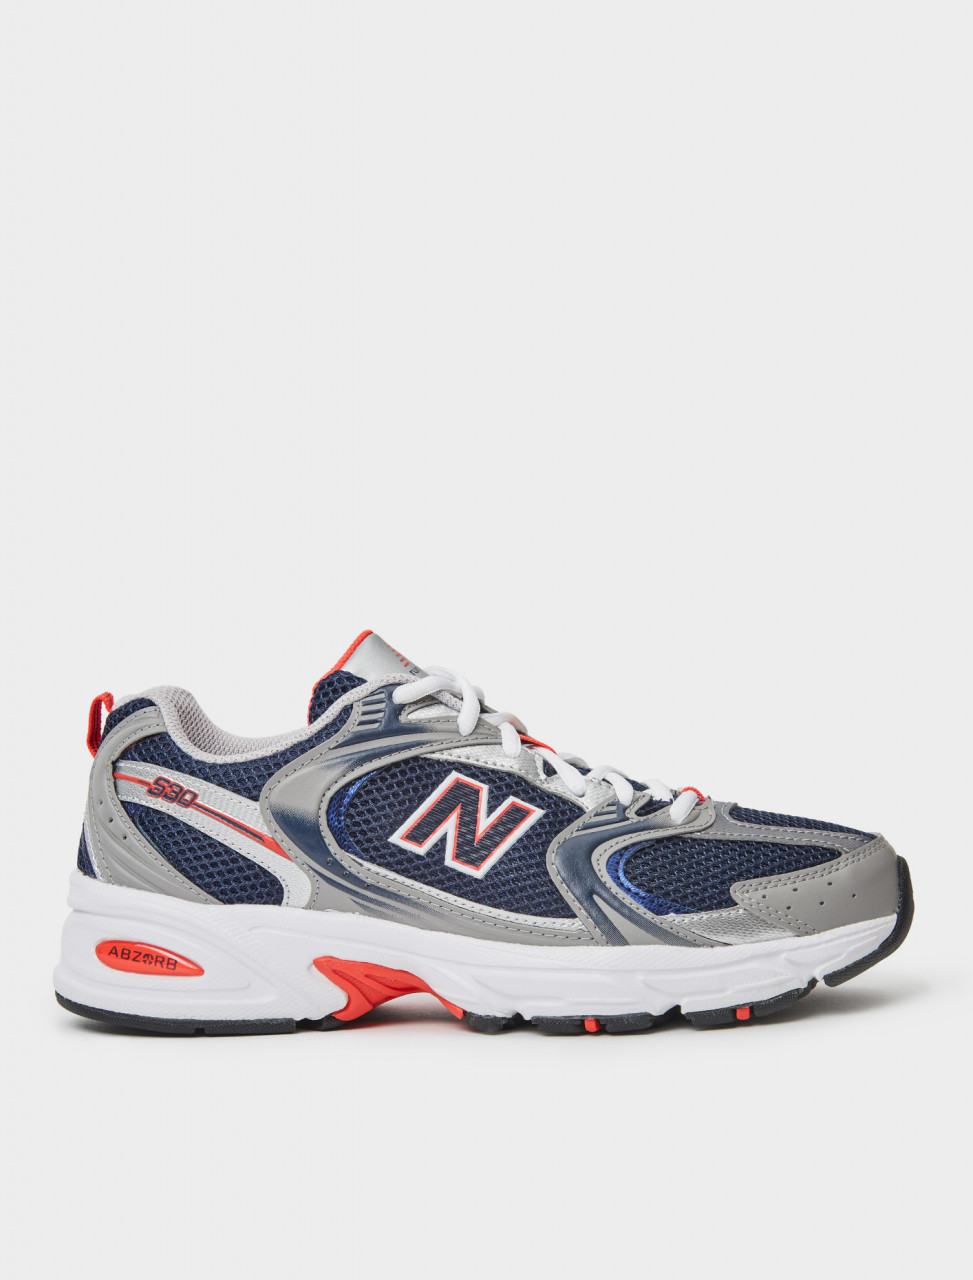 830301-60-10 NEW BALANCE MR530 SNEAKER IN NAVY AND GREY